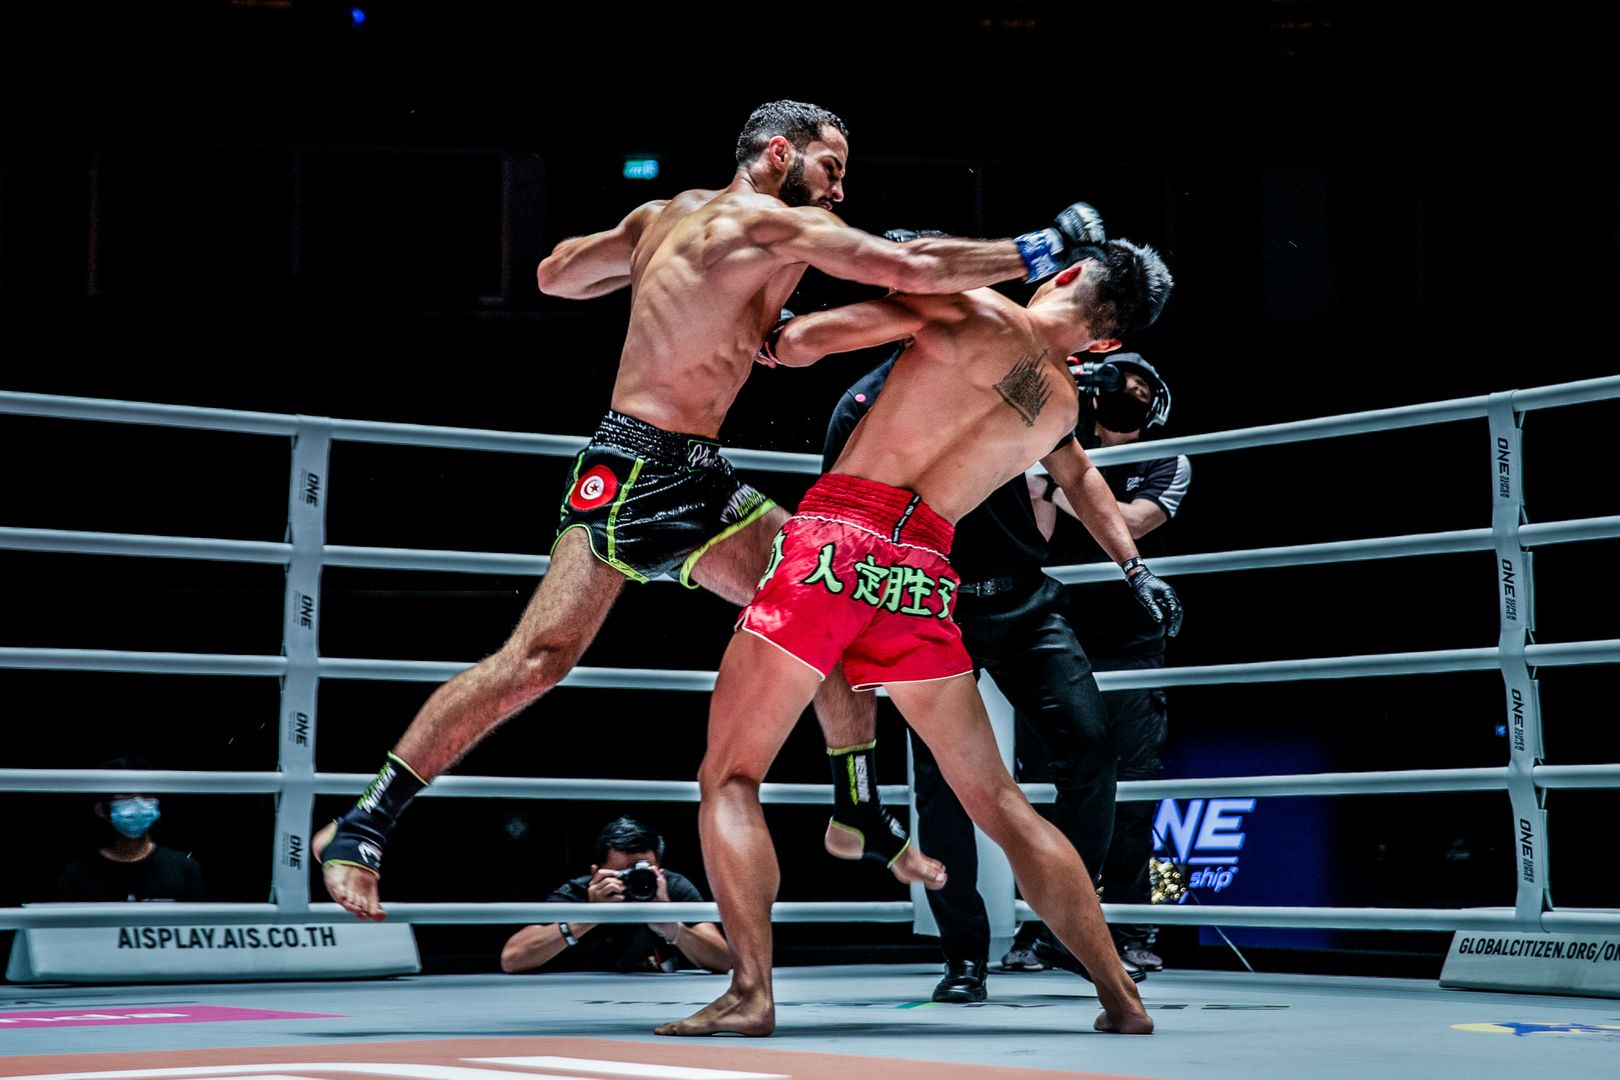 Muay Thai fighters Huang Ding and Fahdi Khaled do battle at ONE: NO SURRENDER II